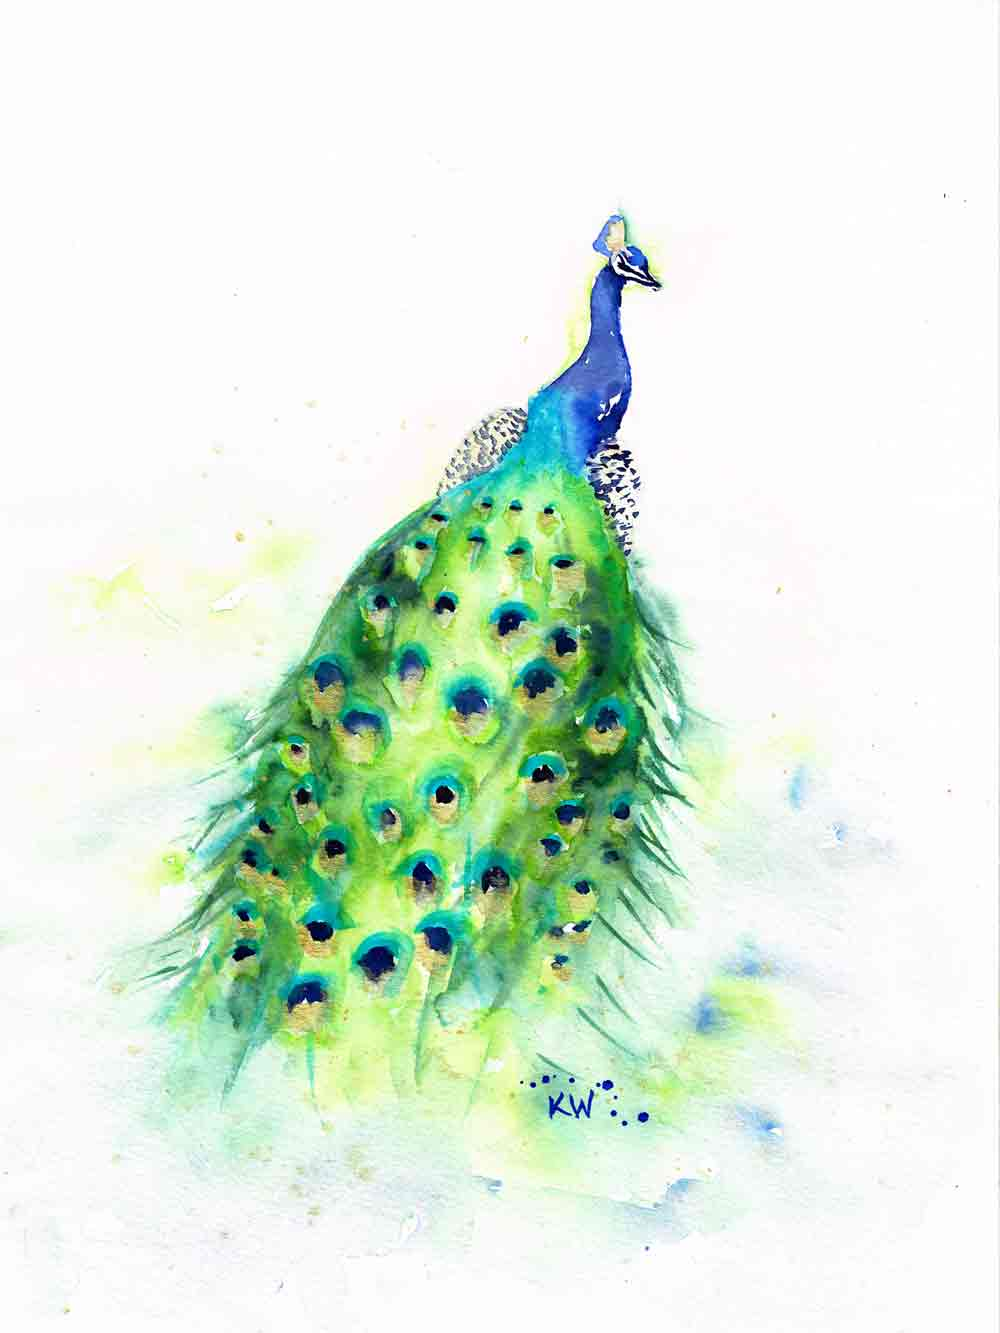 """Dramatic Birds no 6 Peacock Tail (Watercolour on Paper, 9""""x12"""")"""